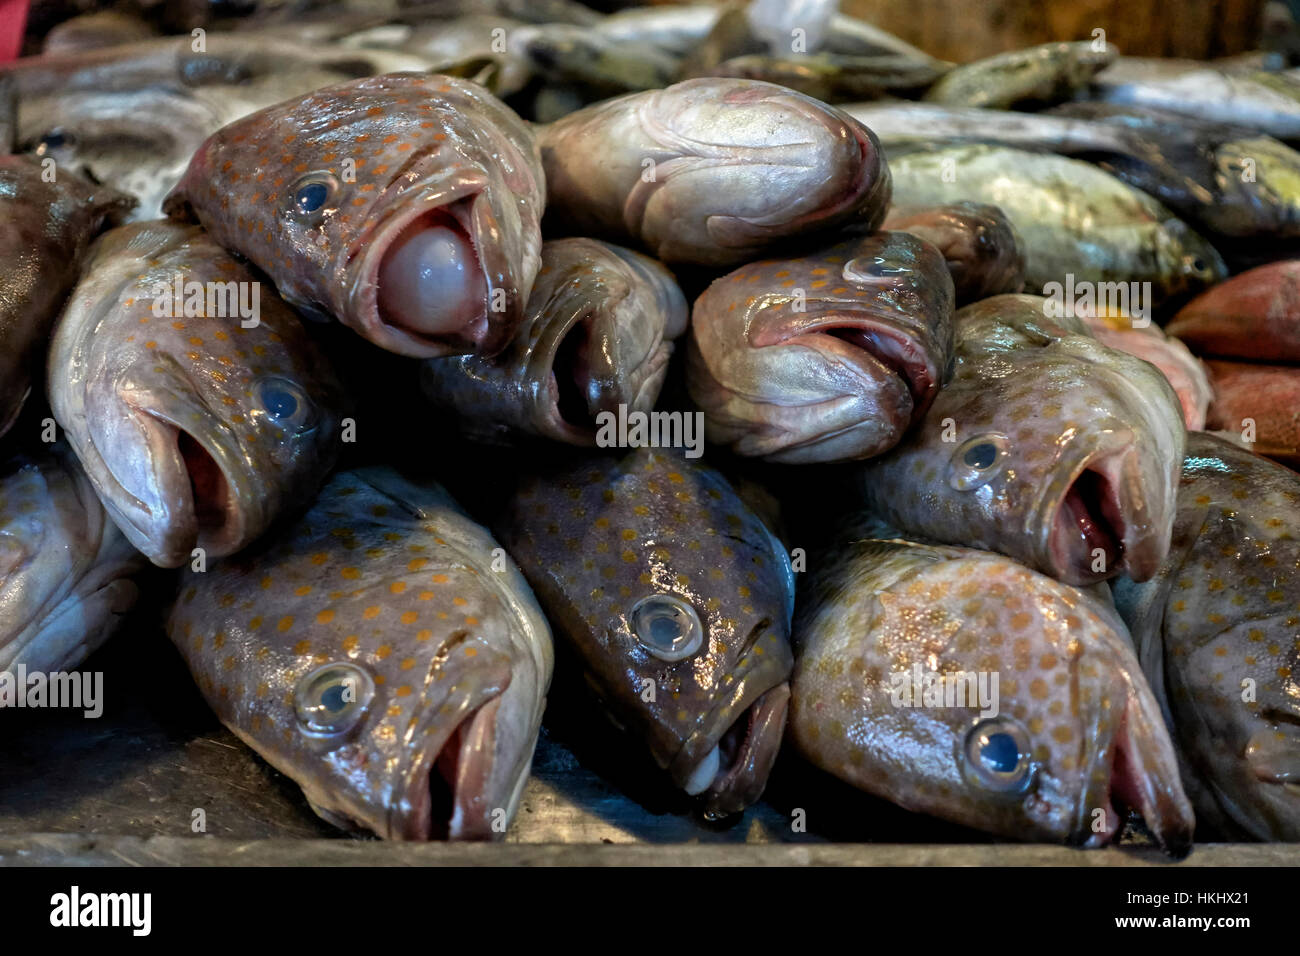 Thailand food market stock photos thailand food market for Daily fresh fish